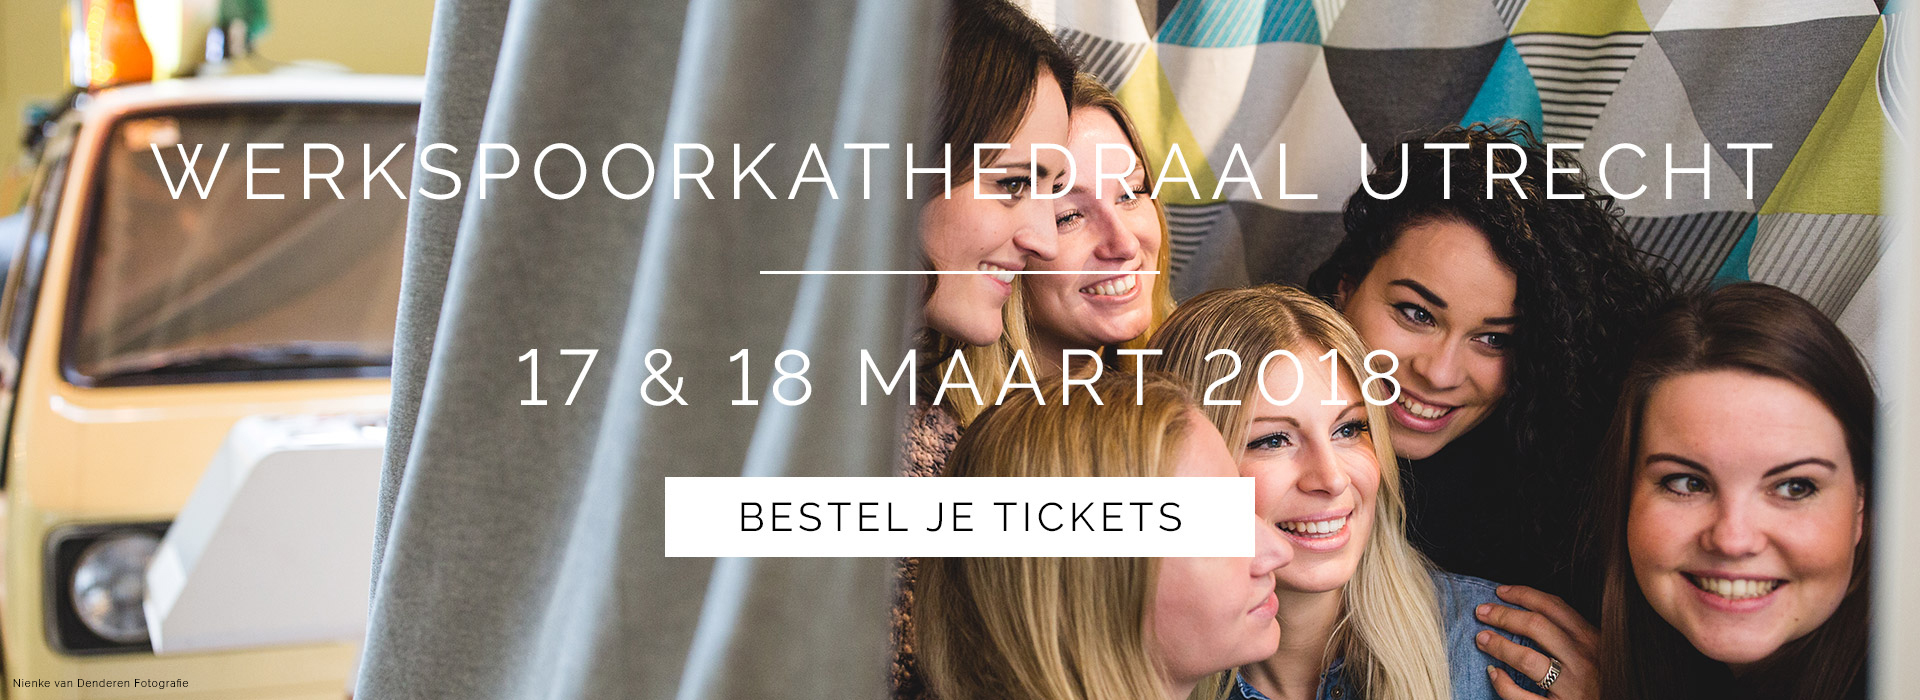 Love and Marriage Werkspoorkathedraal Utrecht